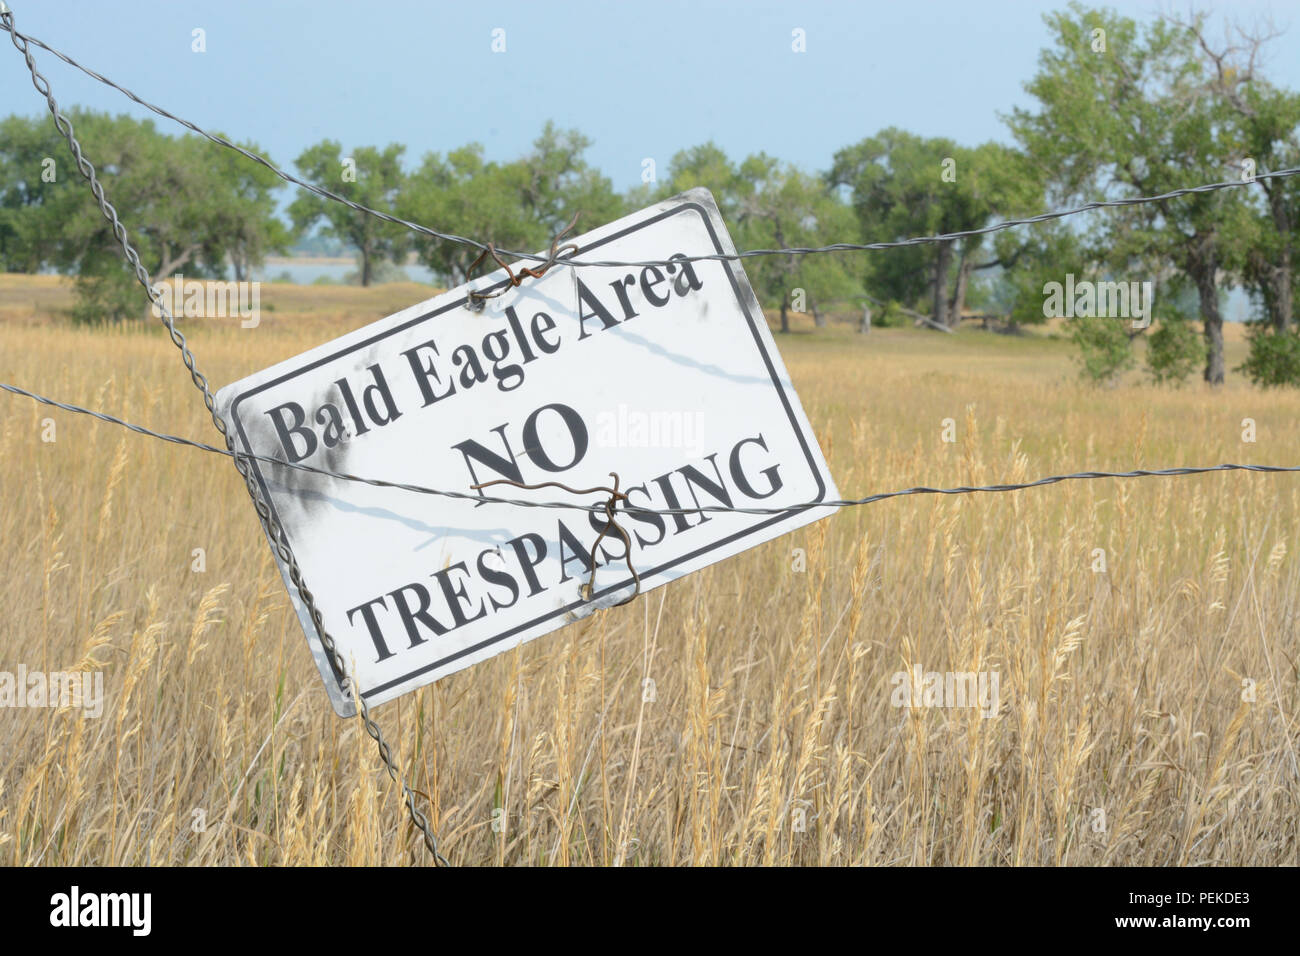 No trespassing sign to protect bald eagle nesting area from disruption by setting boundaries for humans to keep their distance in wildlife refuge Stock Photo